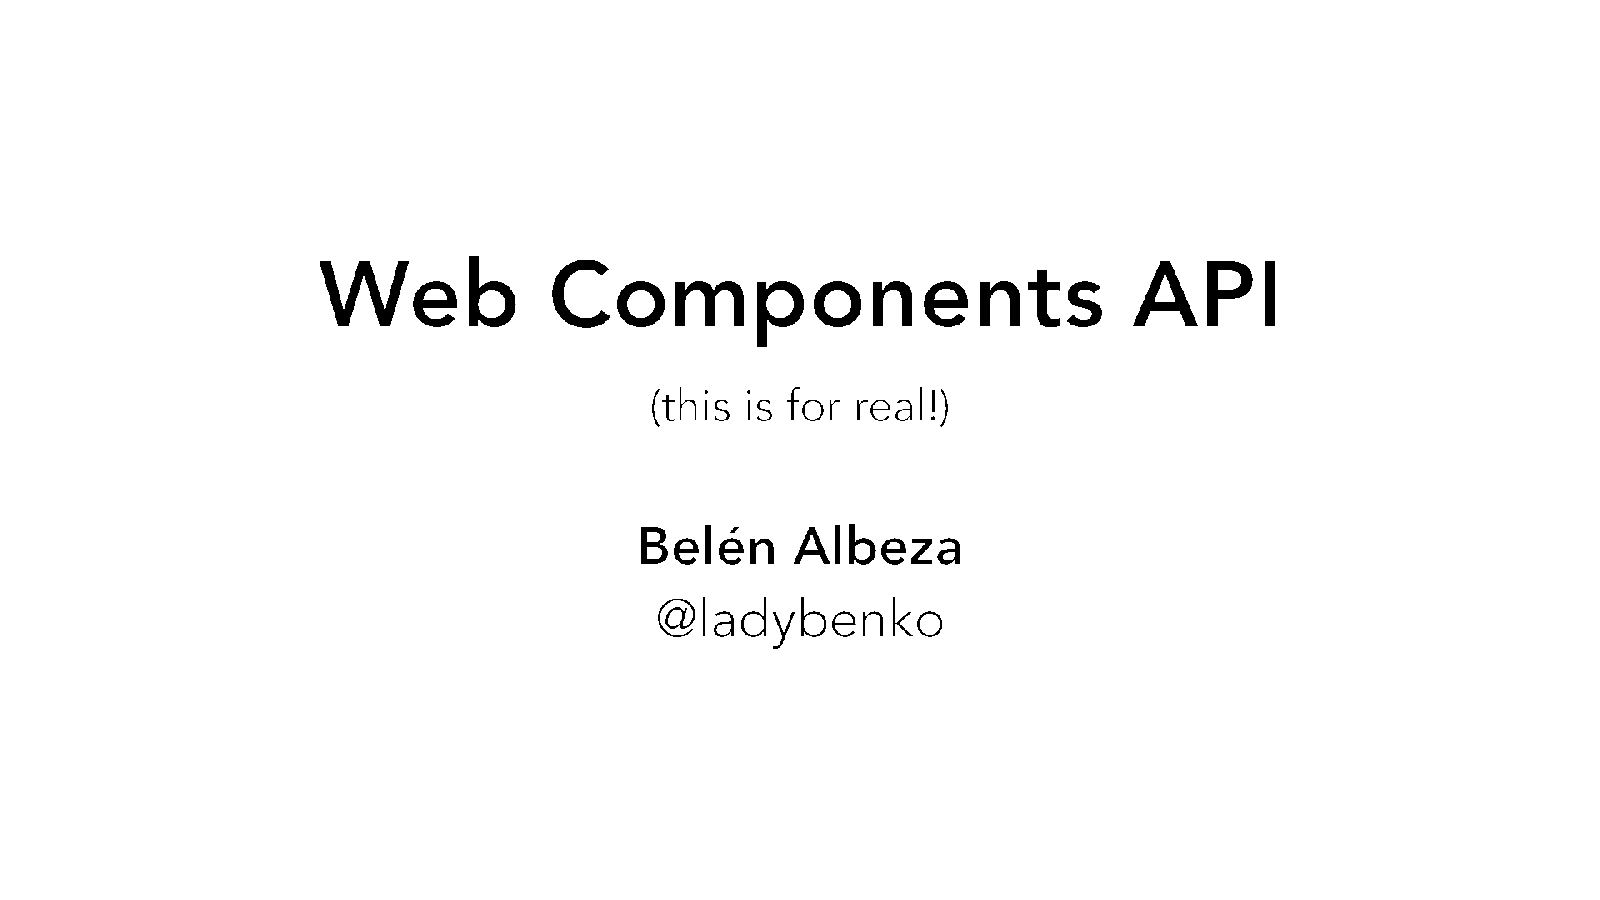 Web Components API (this is for real!)